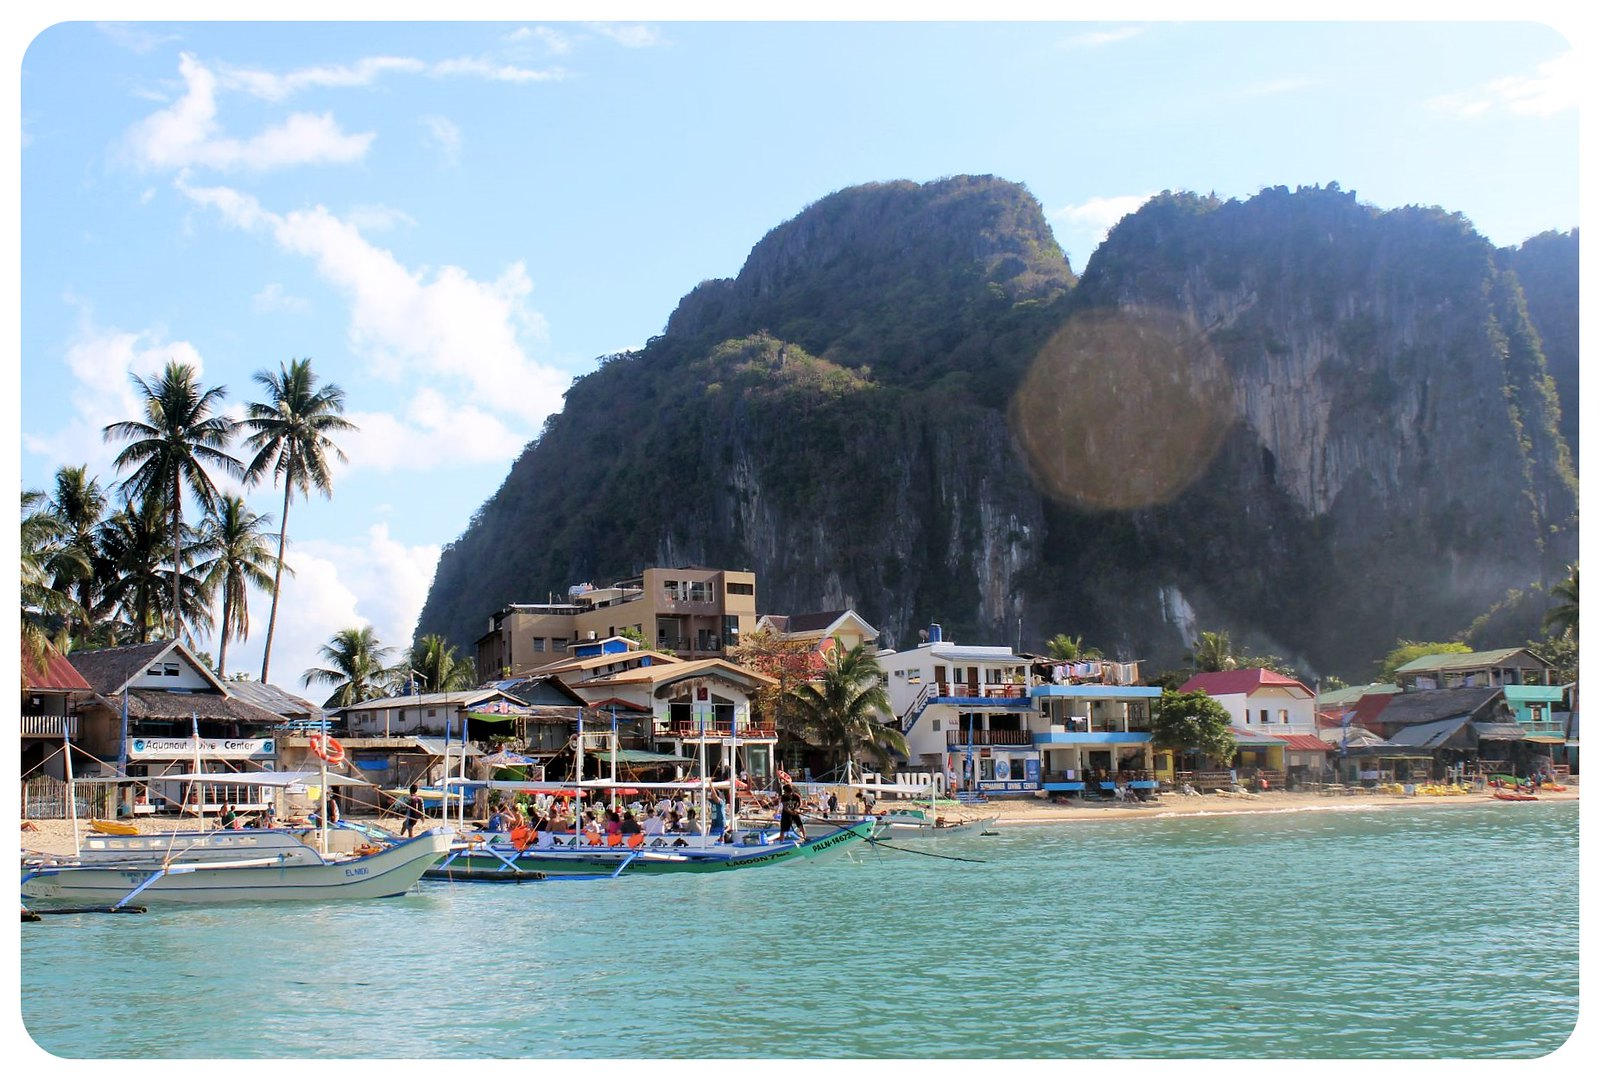 el nido from the water